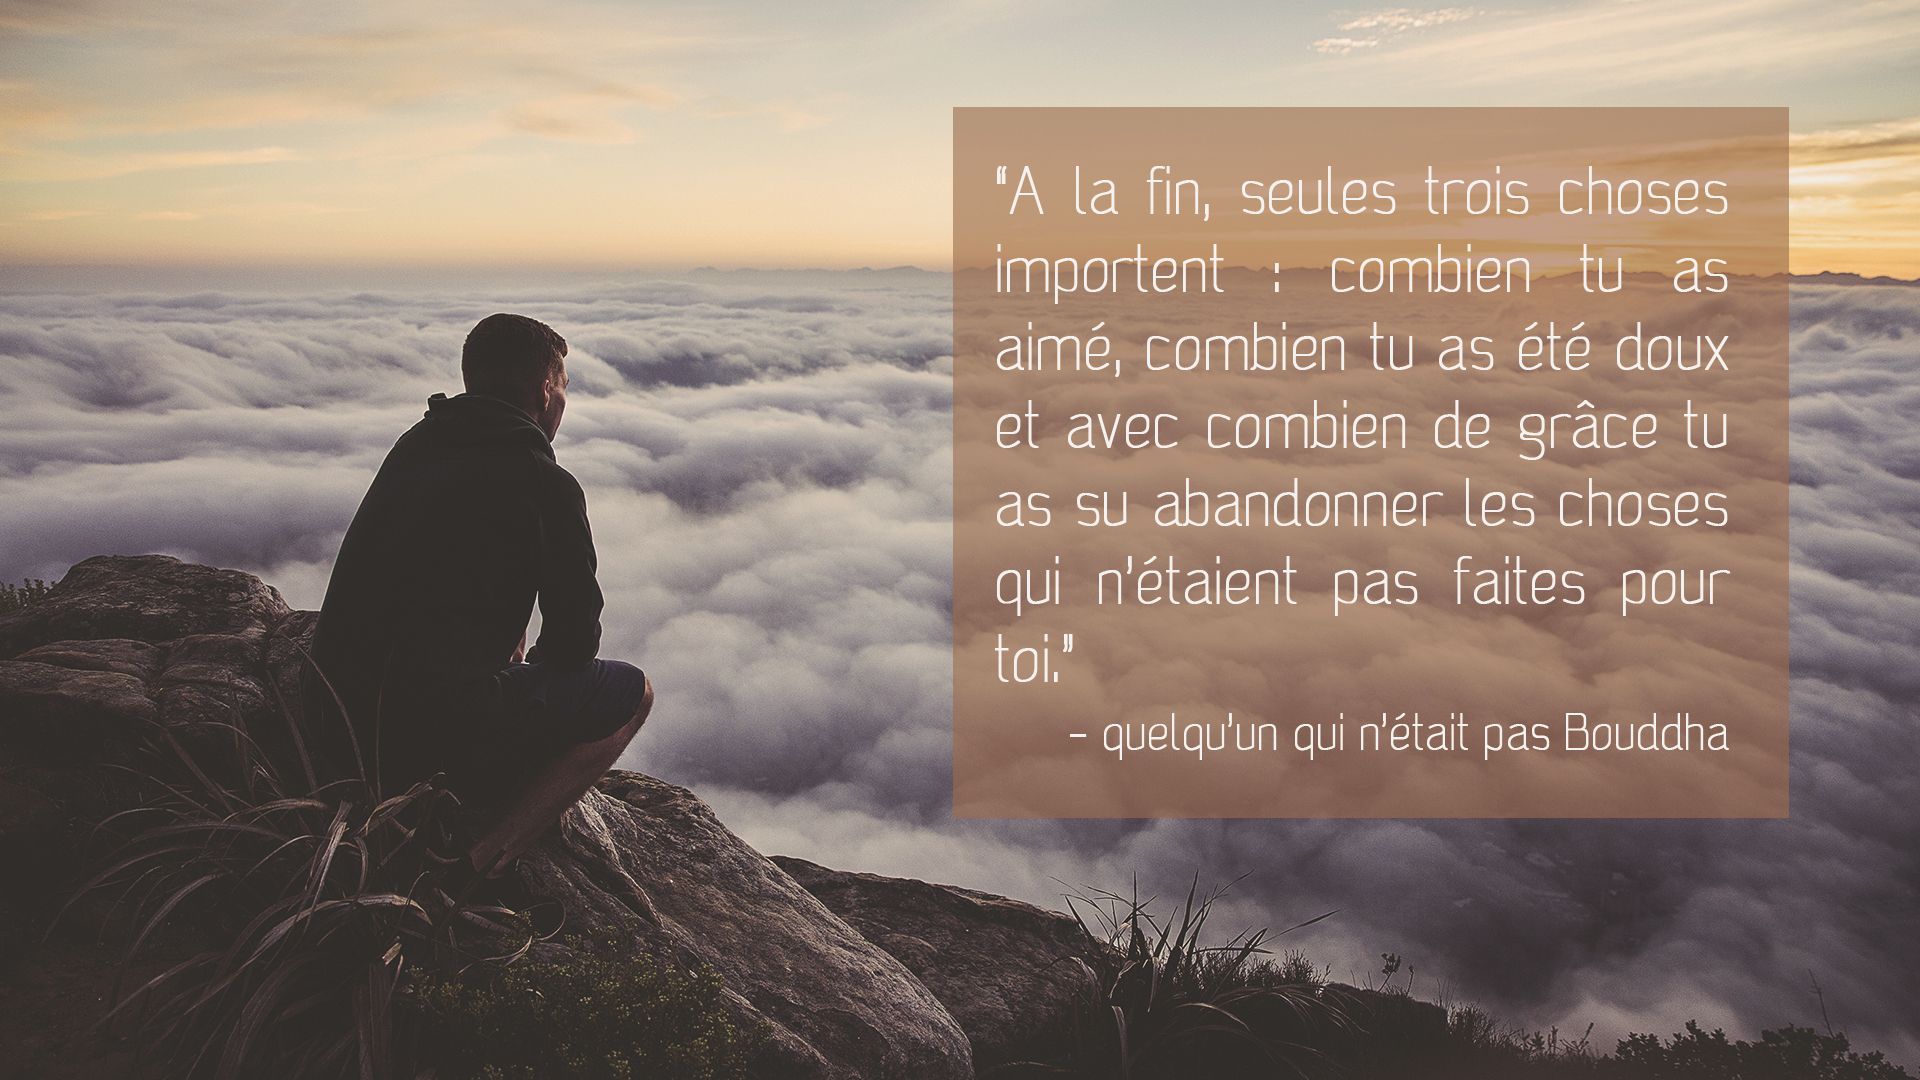 Presqu'une citation de Bouddha | Antonin .B